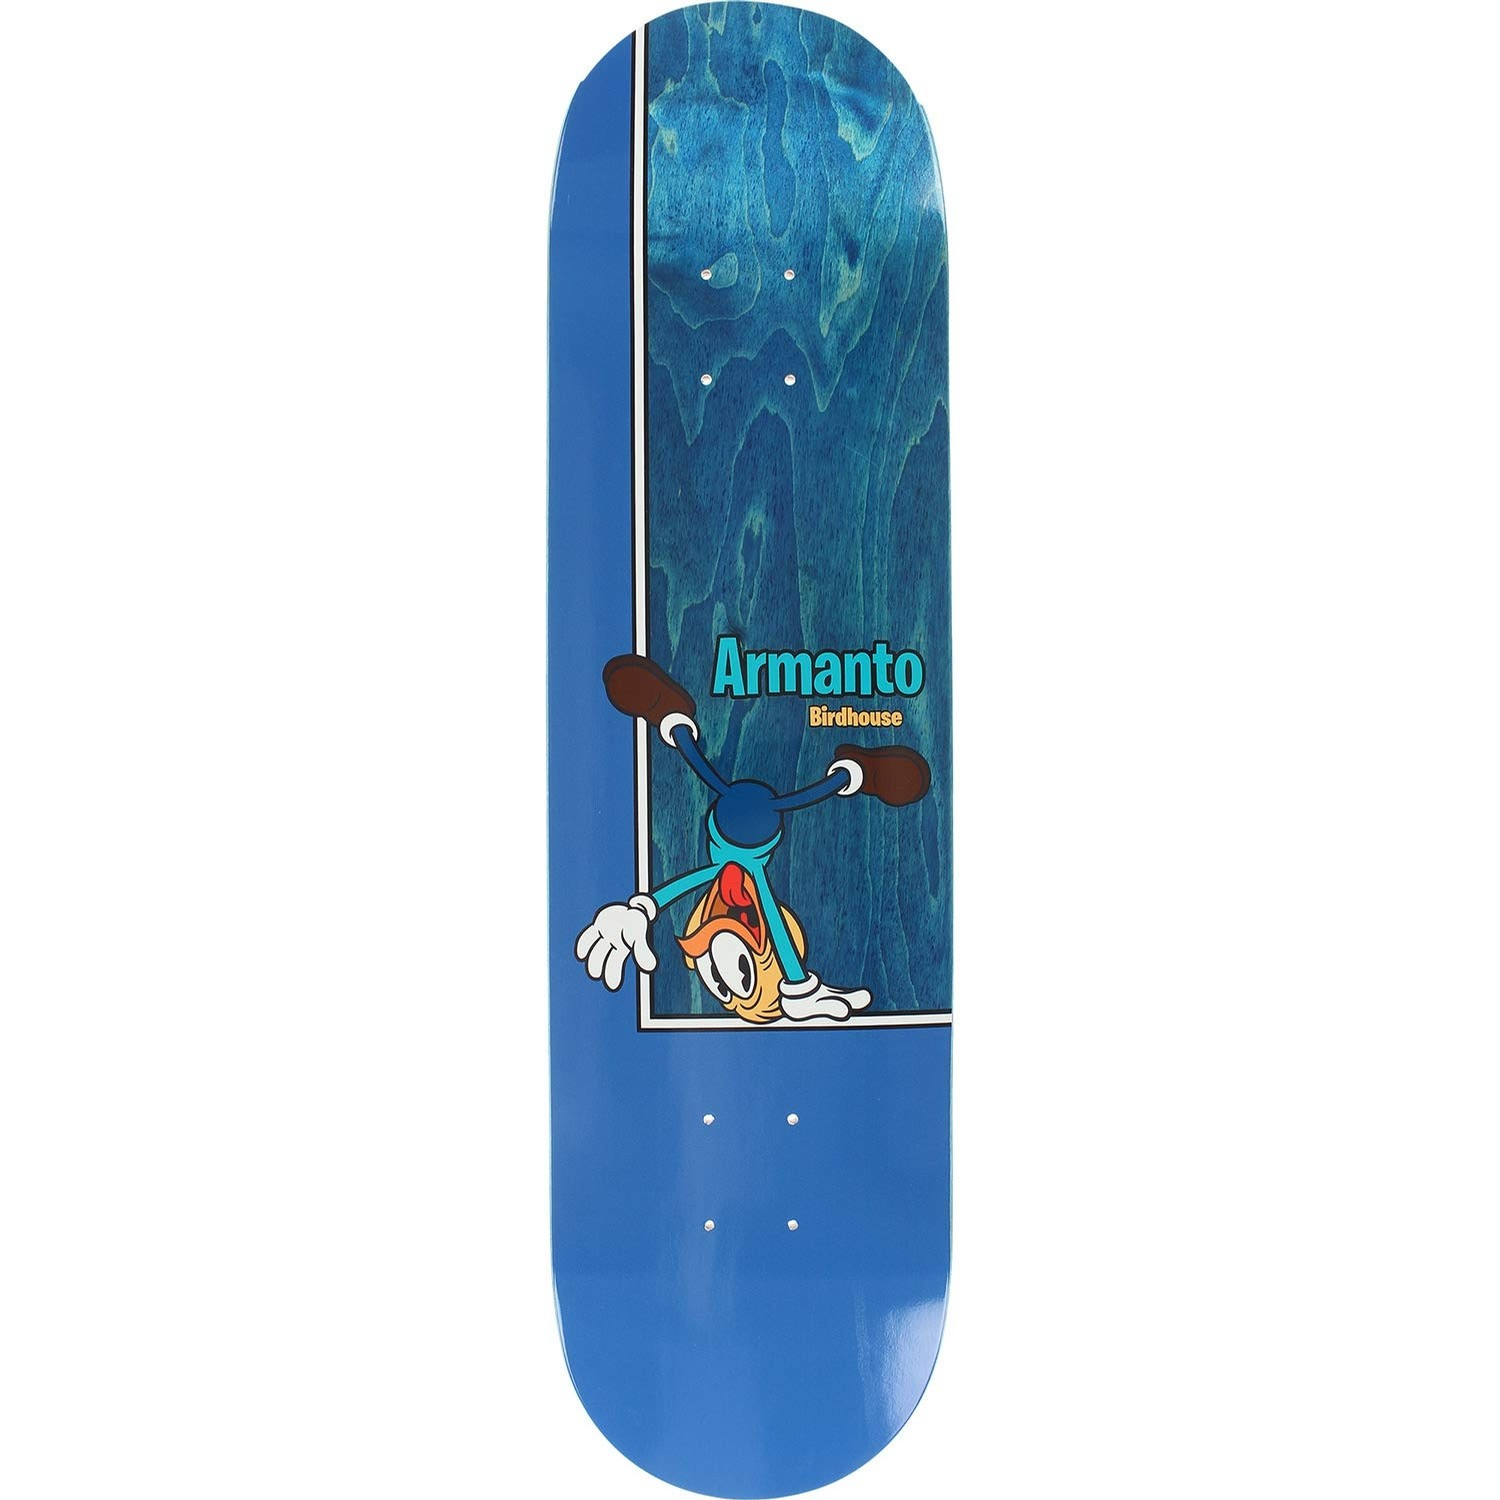 Lizzie Armanto Birds Deck (Miscellaneous Stains)